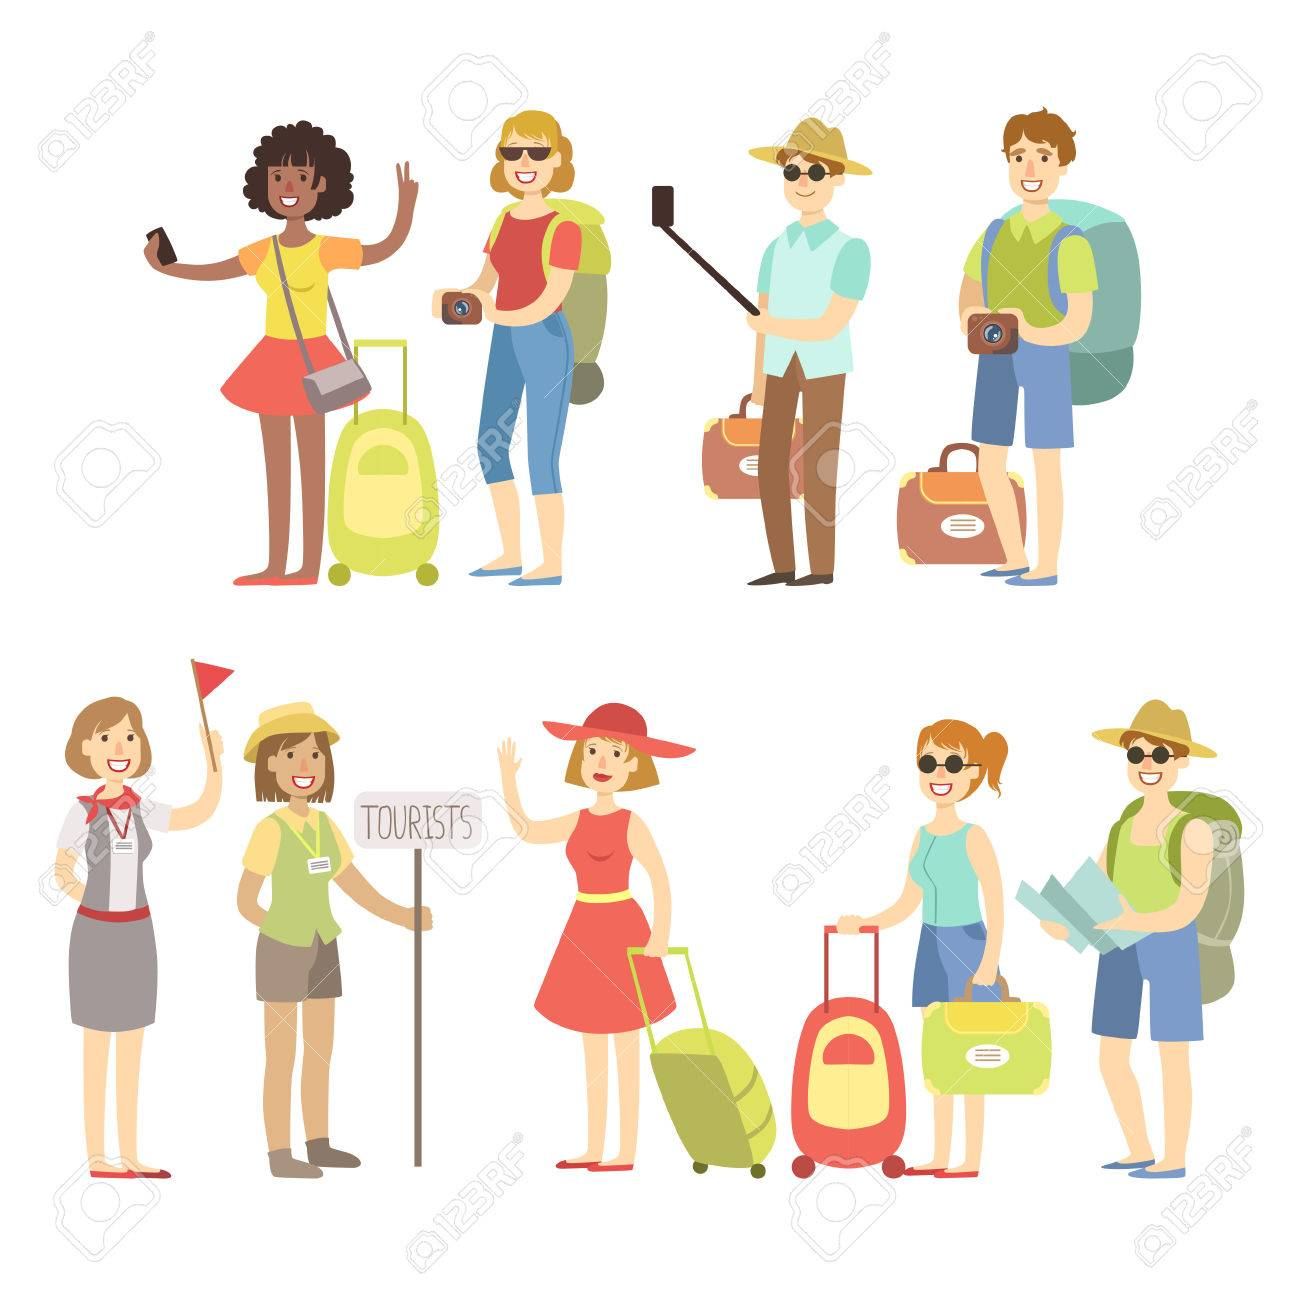 Happy Tourist With Bags And Cameras Set Flat Childish Cartoon Style Bright Color Vector Illustration On White Background - 59064633